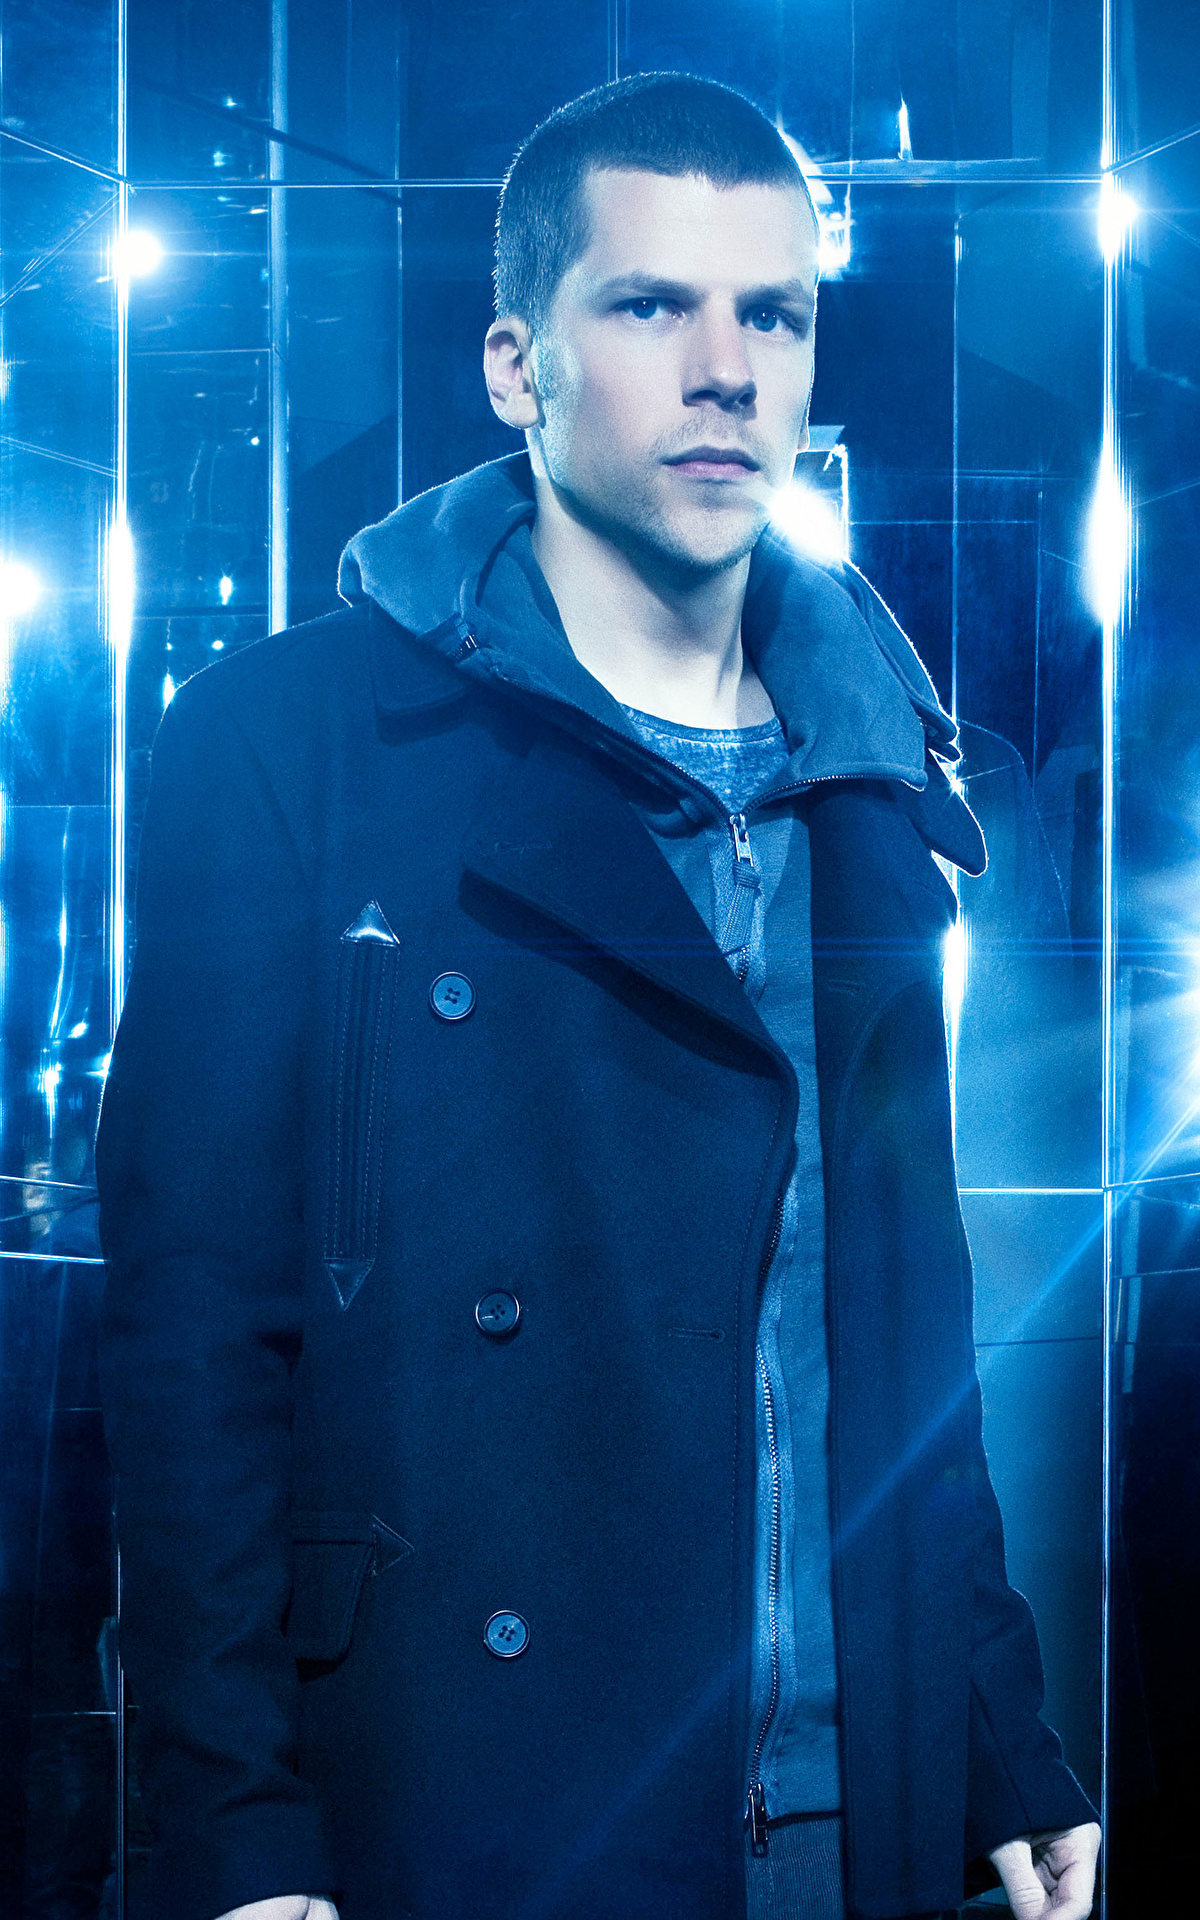 Picture Jesse Eisenberg Man Now You See Me 2 Movies - Daniel Atlas Now You See Me 2 , HD Wallpaper & Backgrounds